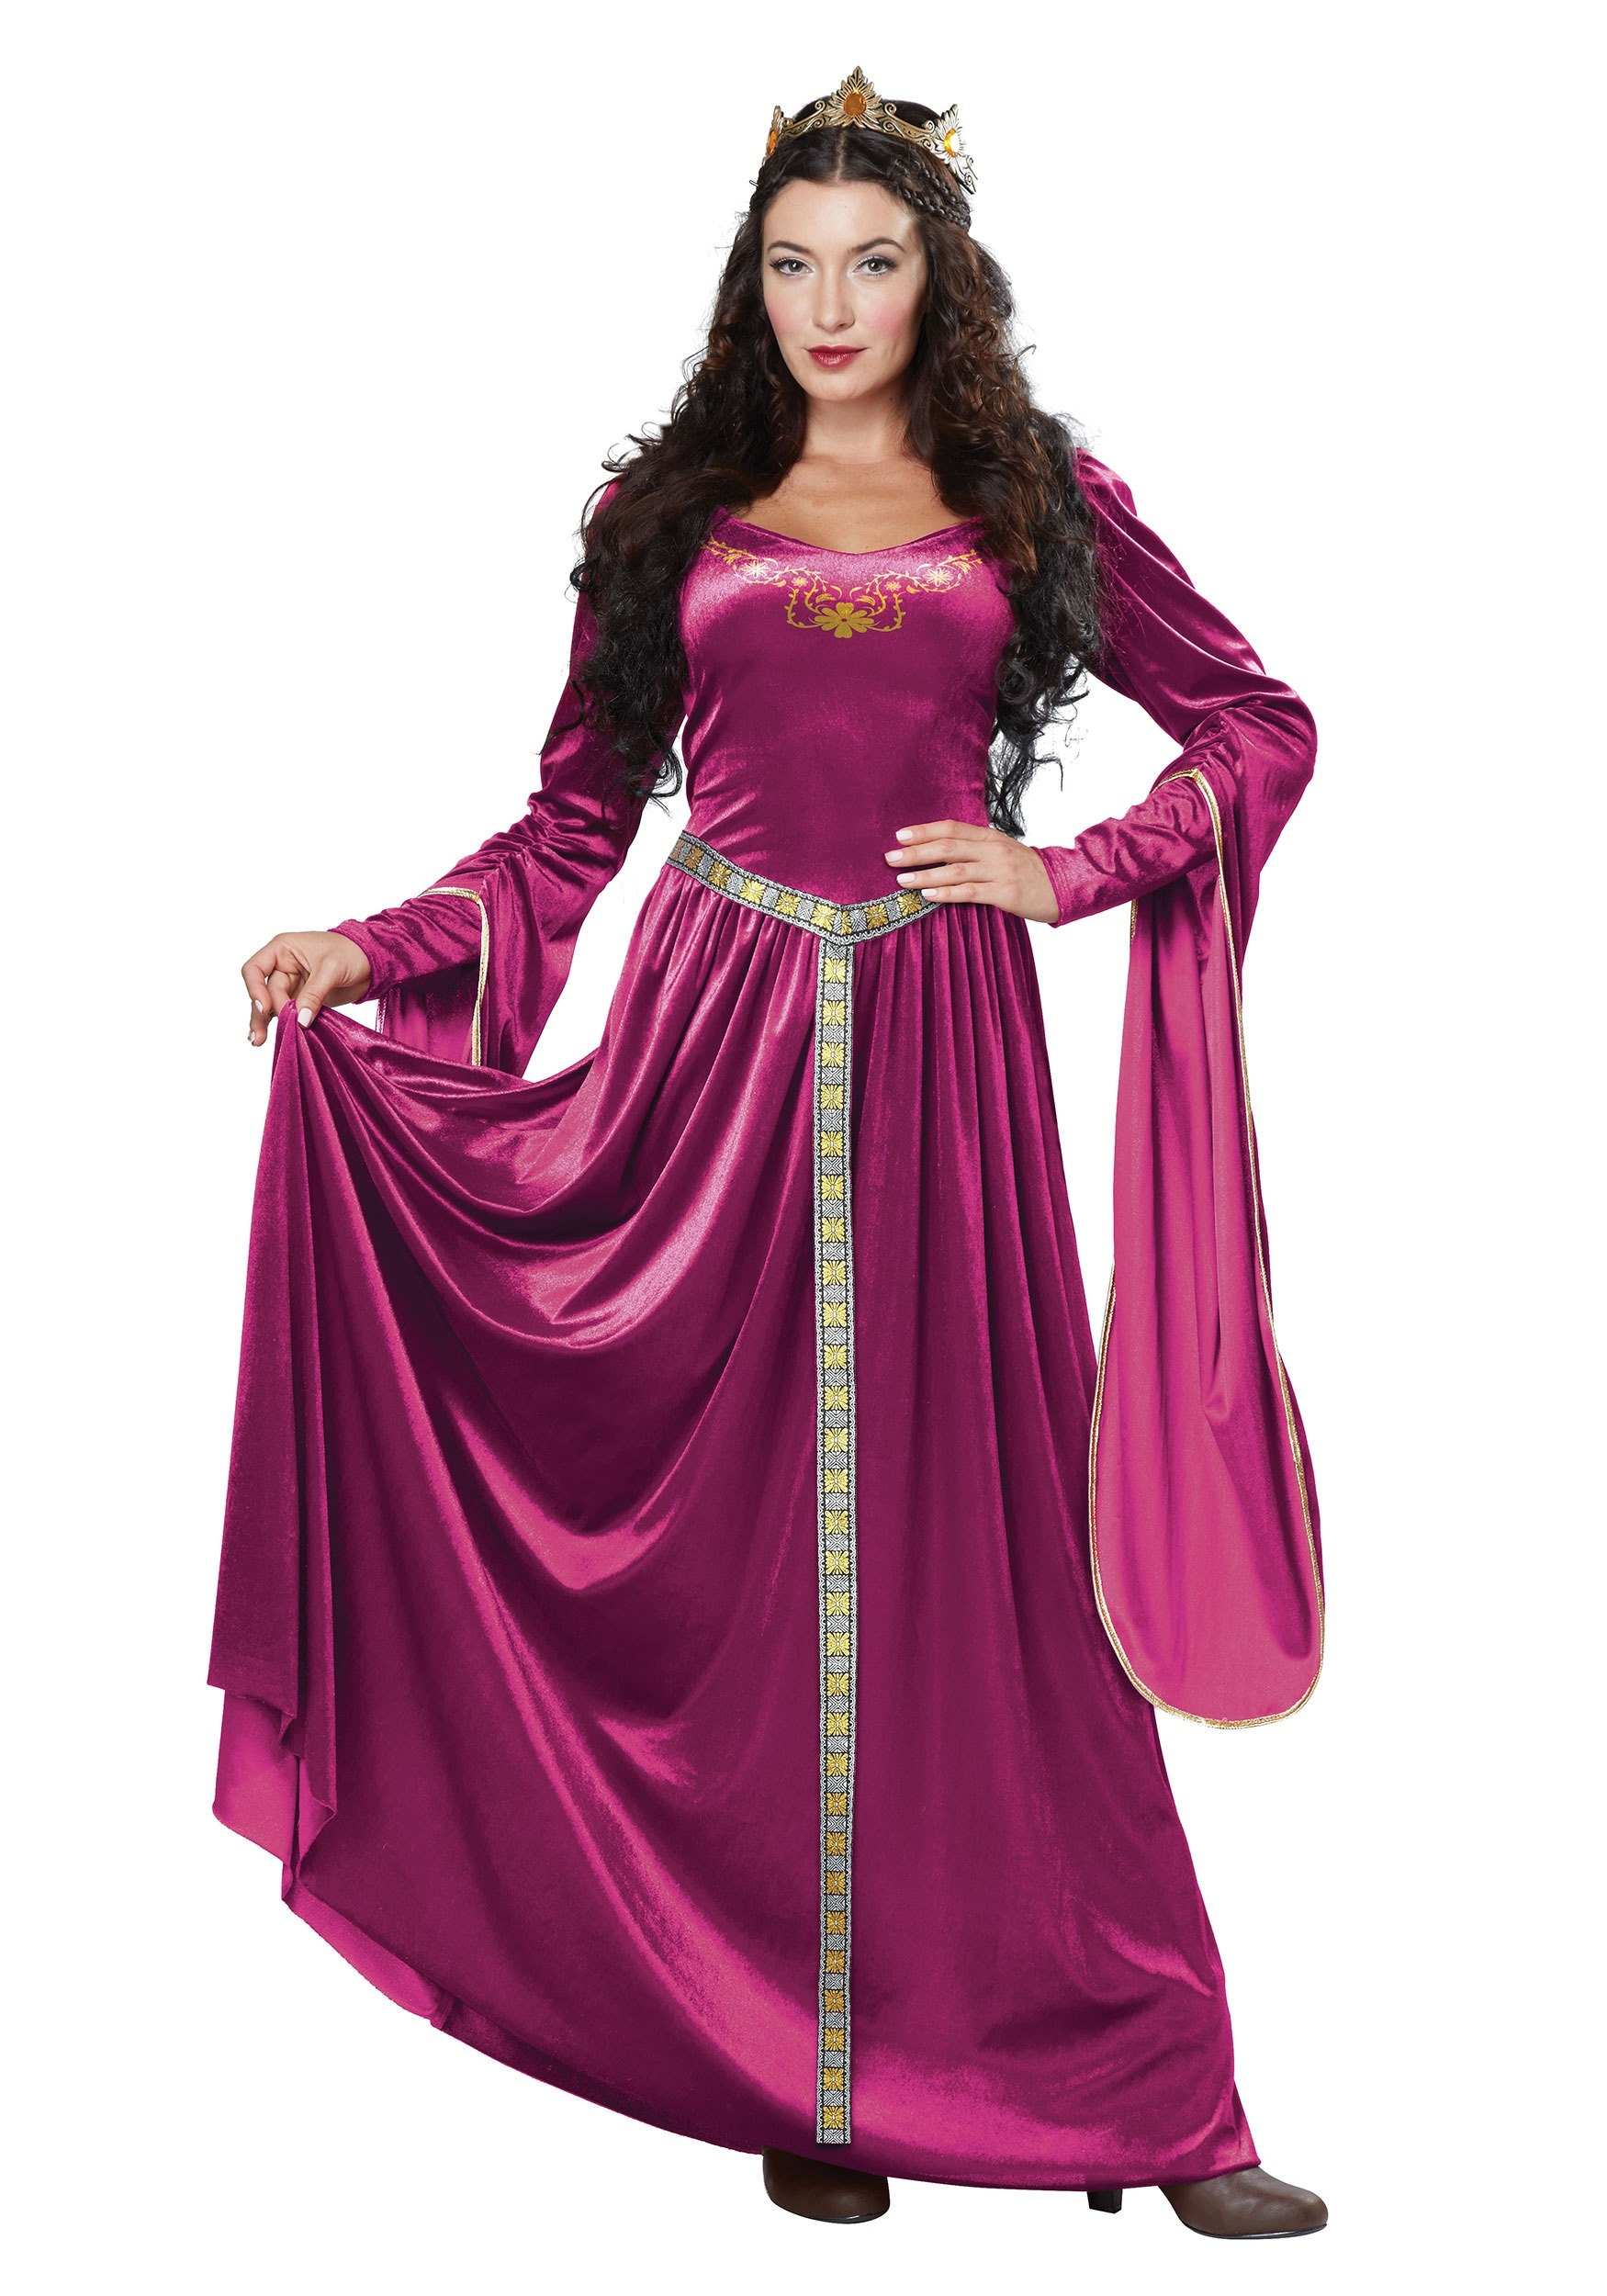 9883ee41bc3e9 Lady Guinevere Costume for Women